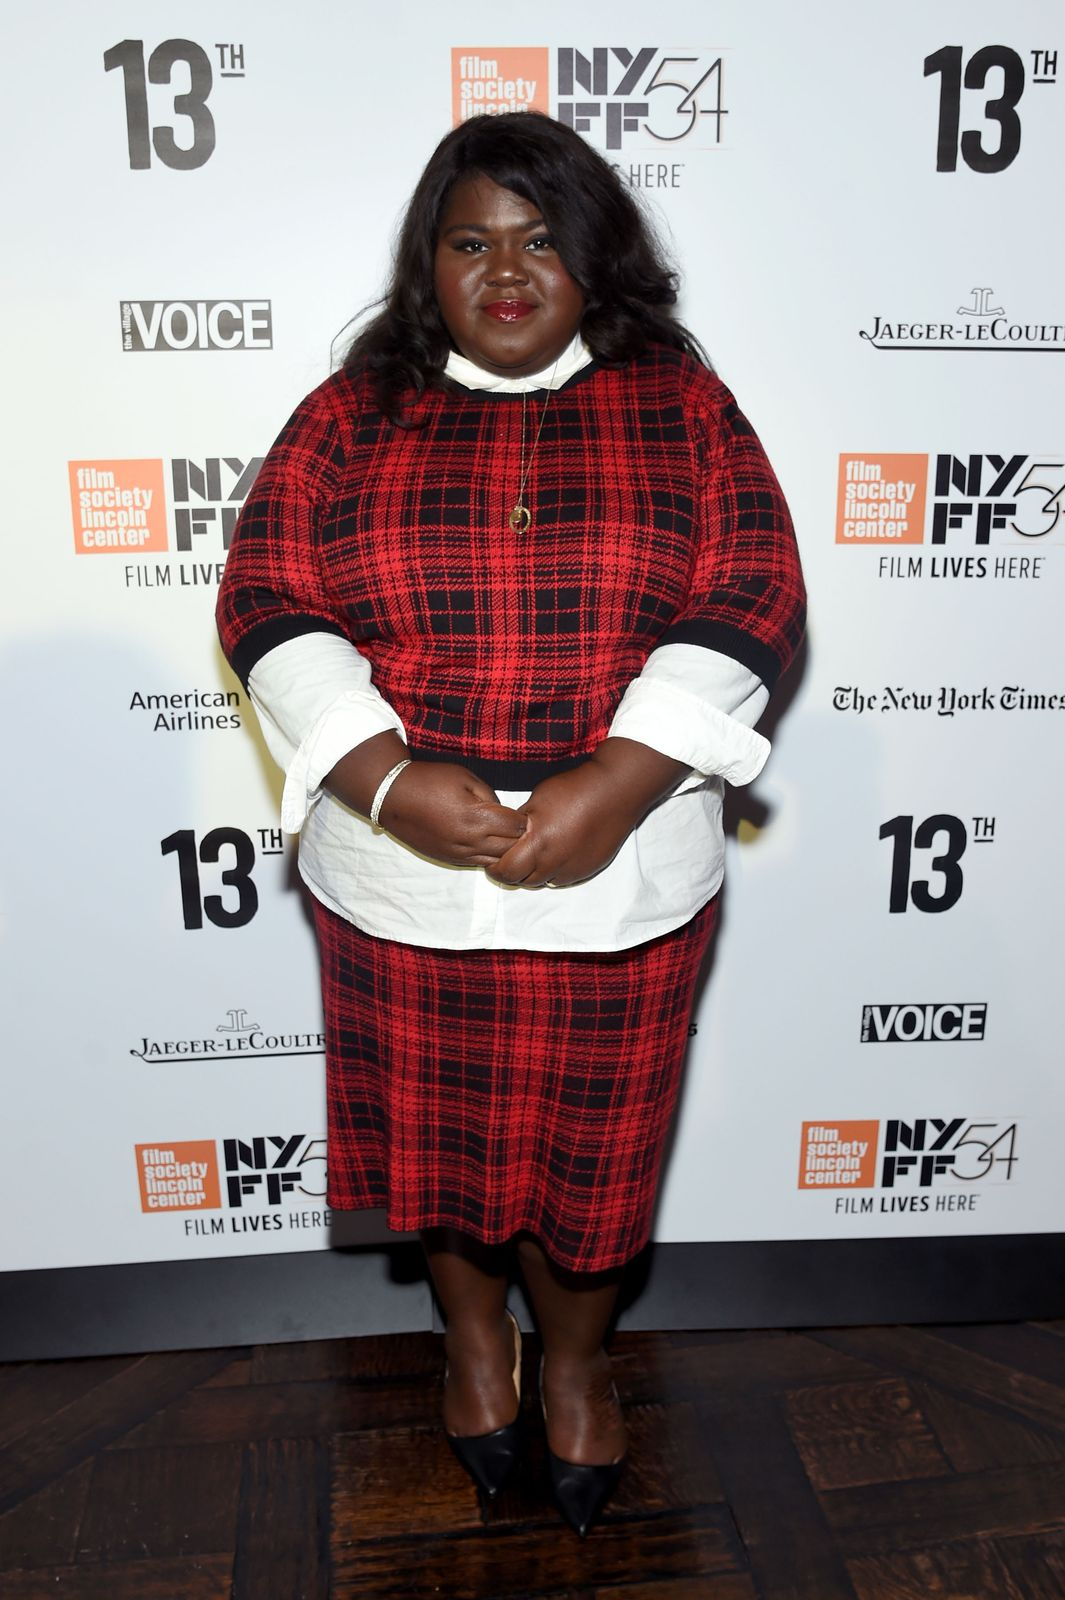 Gabourey Sidibe at the New York Film Festival opening night party on September 30, 2016 in New York City.   Source: Getty Images